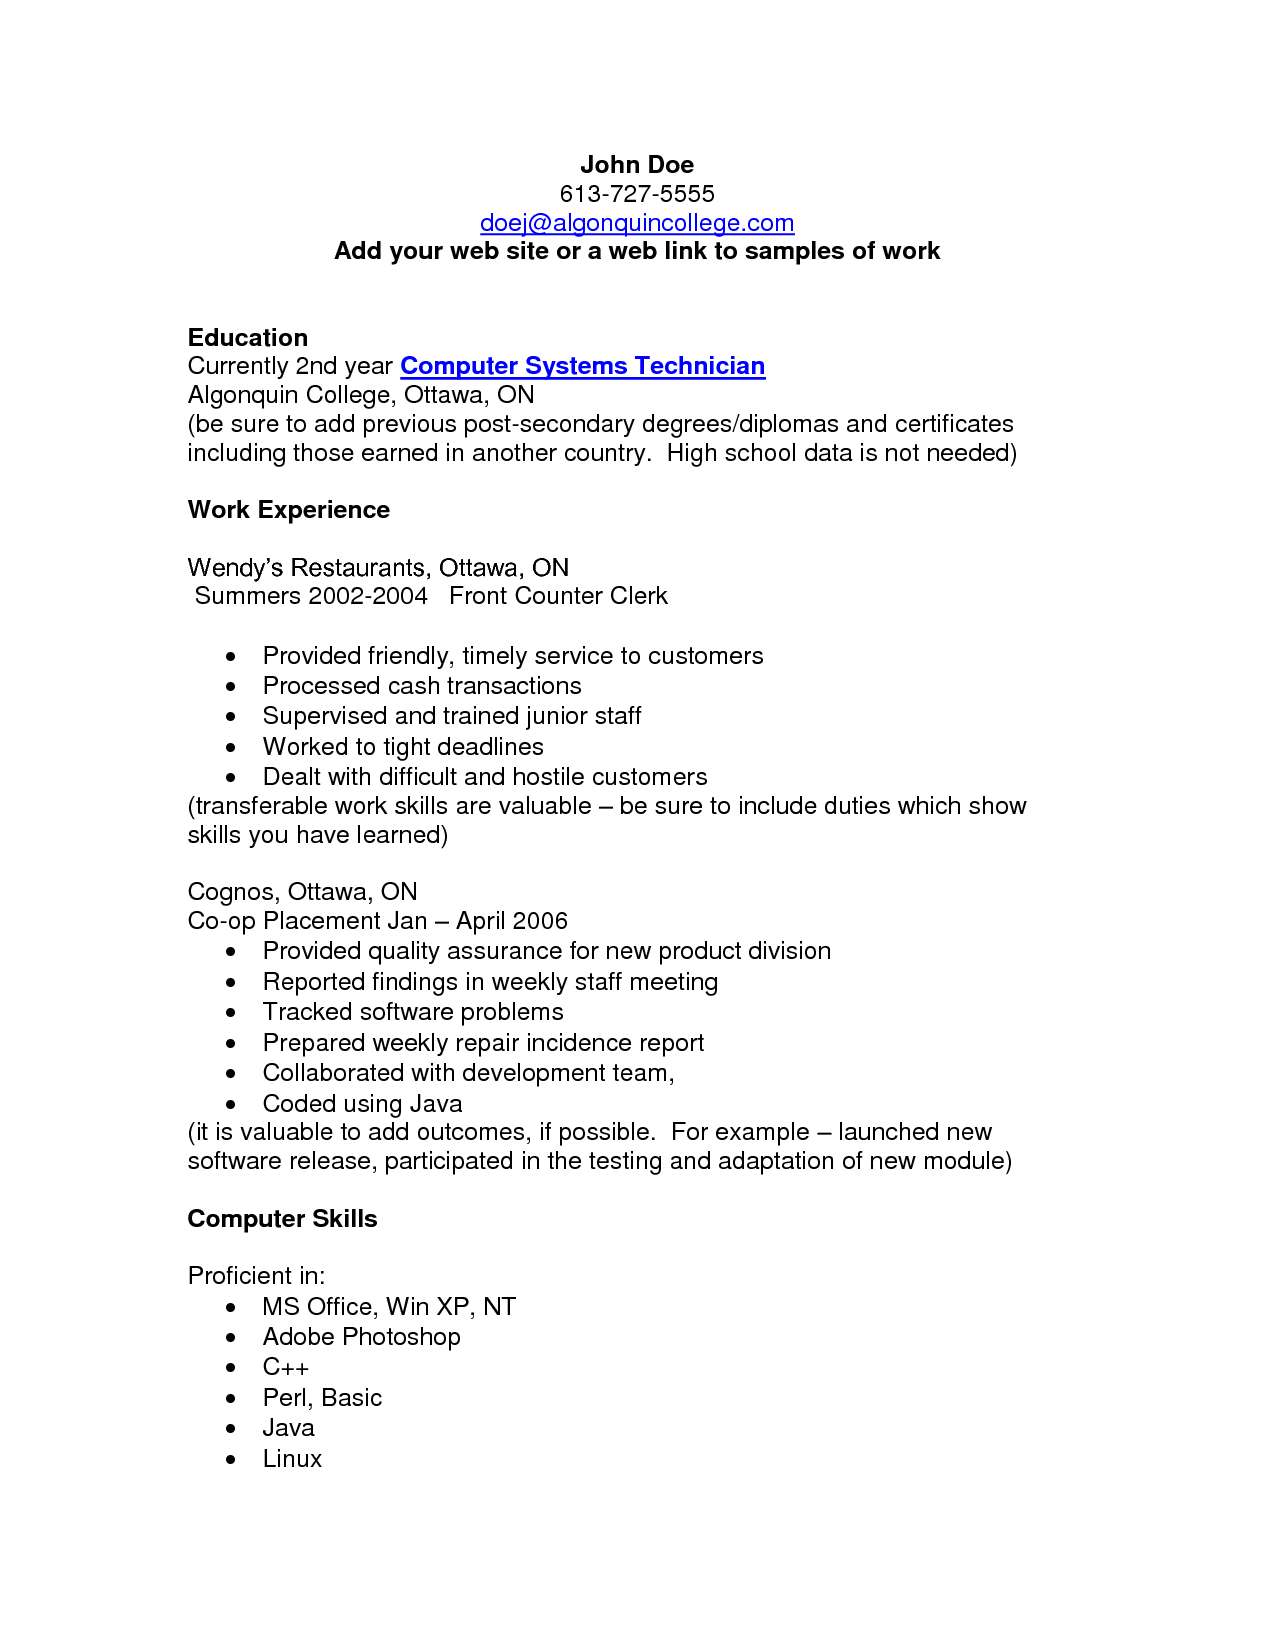 Computer Proficiency Resume Format   Http://www.resumecareer.info/computer  Computer Proficiency Resume